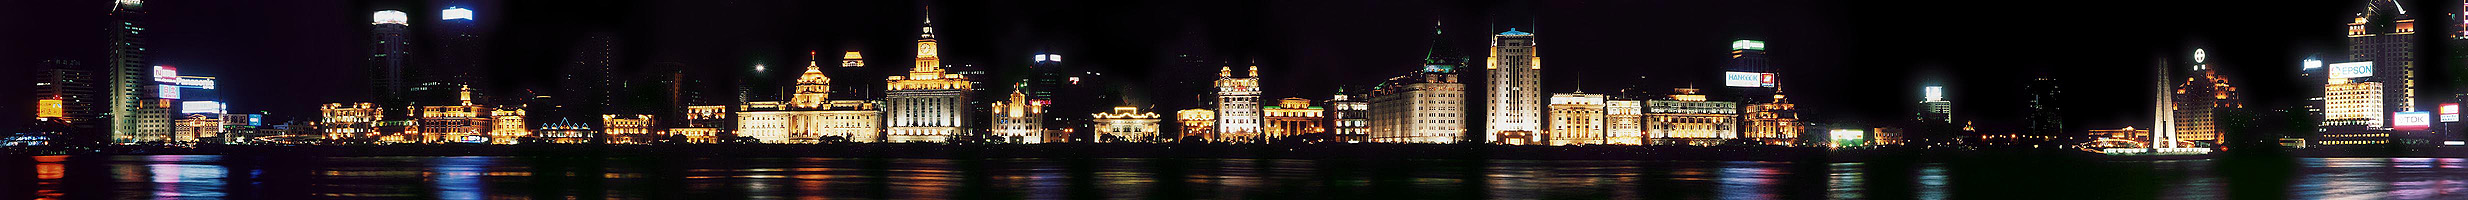 The_Bund_of_Shanghai.jpg